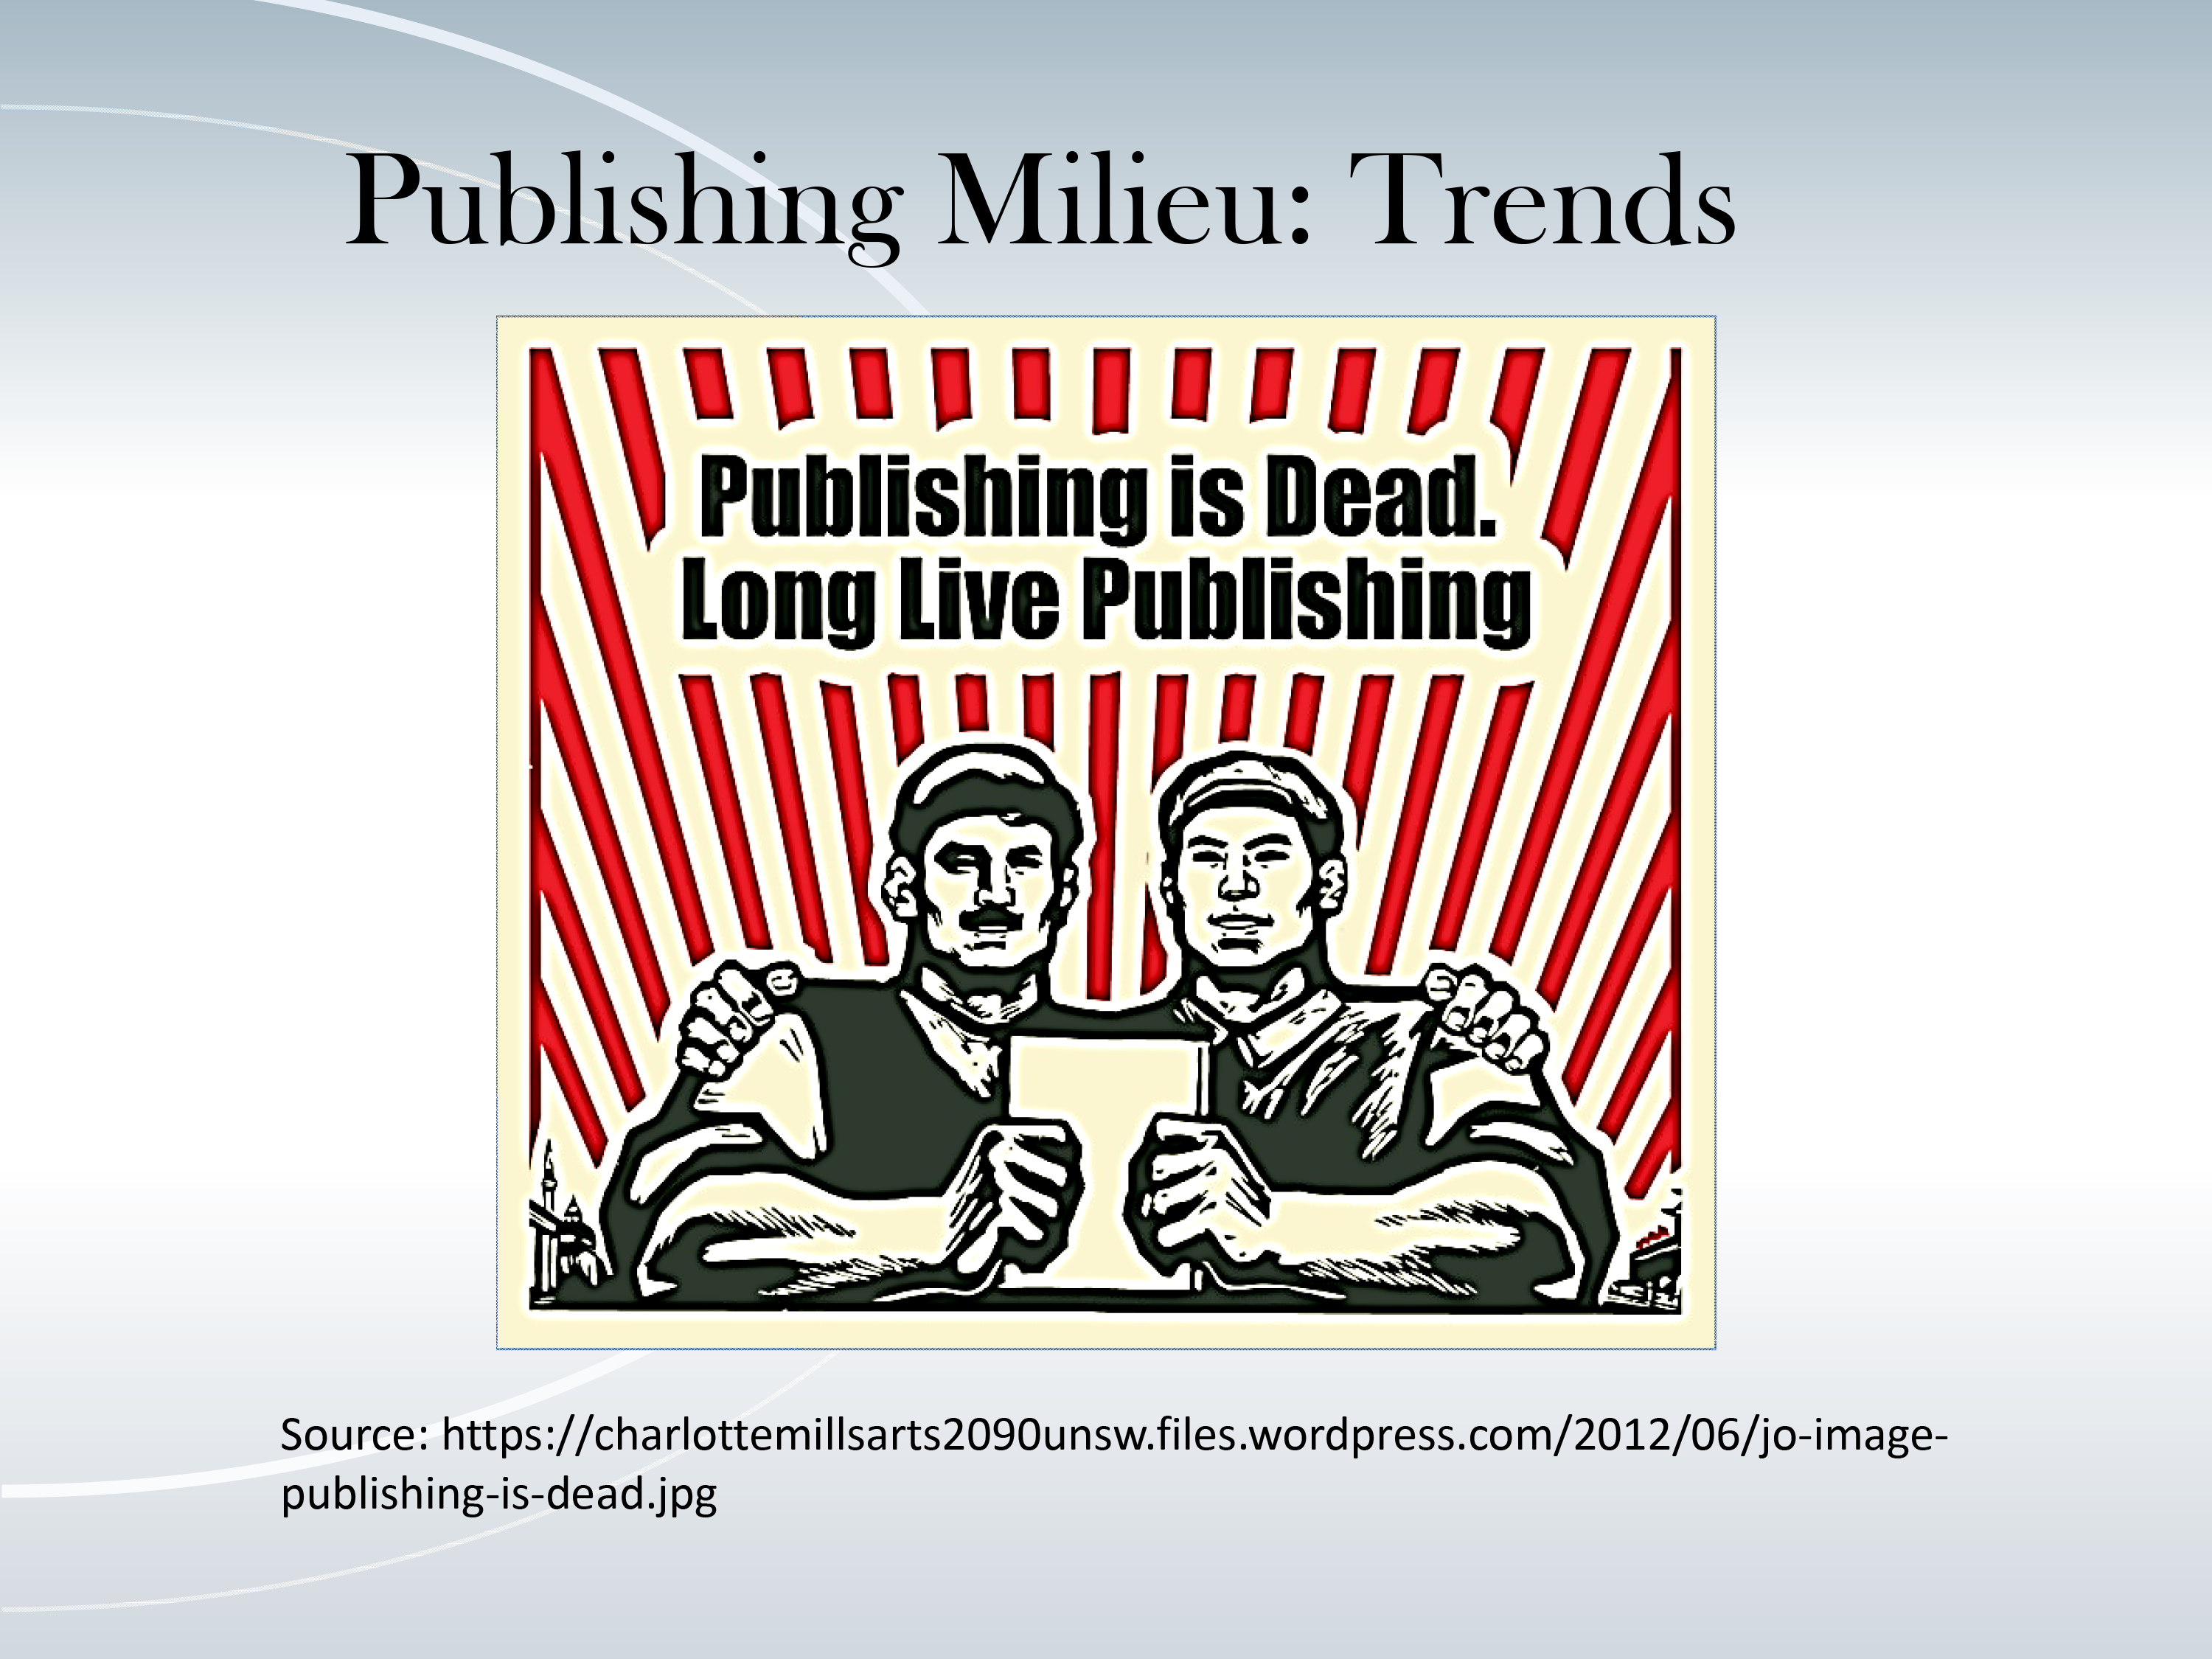 Publishing Milieu: Trends